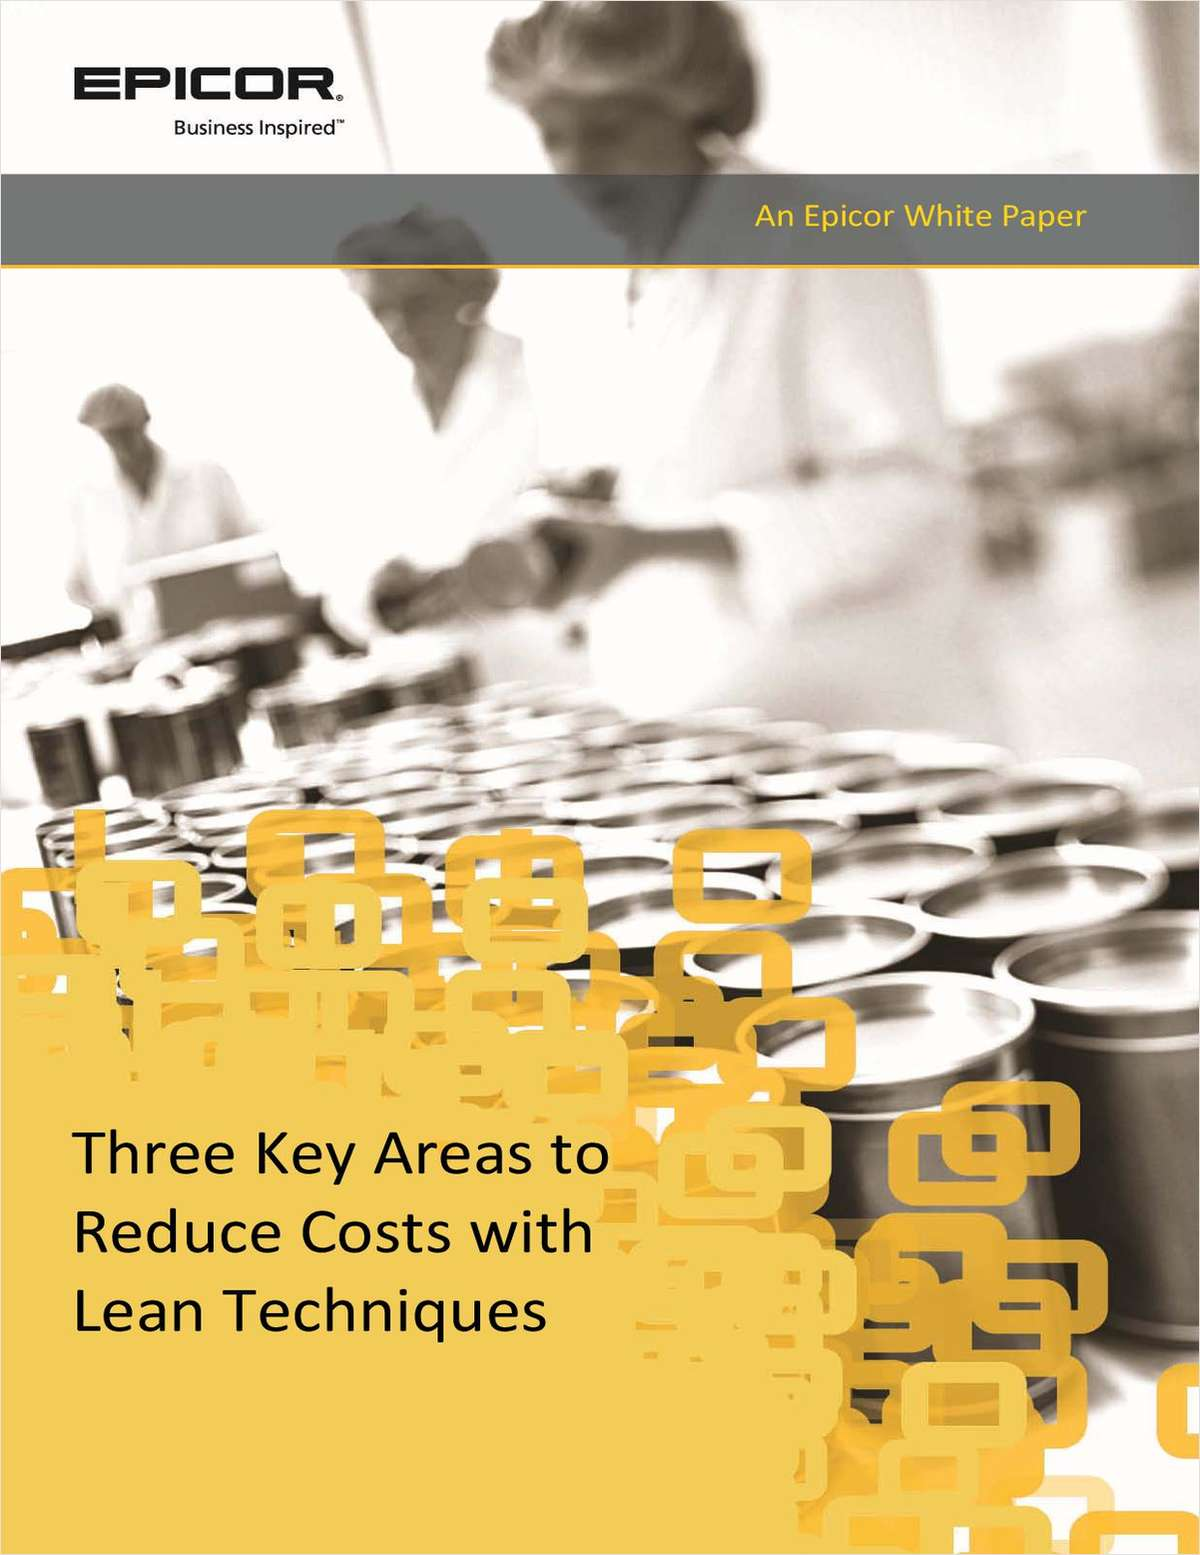 3 Key Area's to Reduce Costs with Lean Technologies